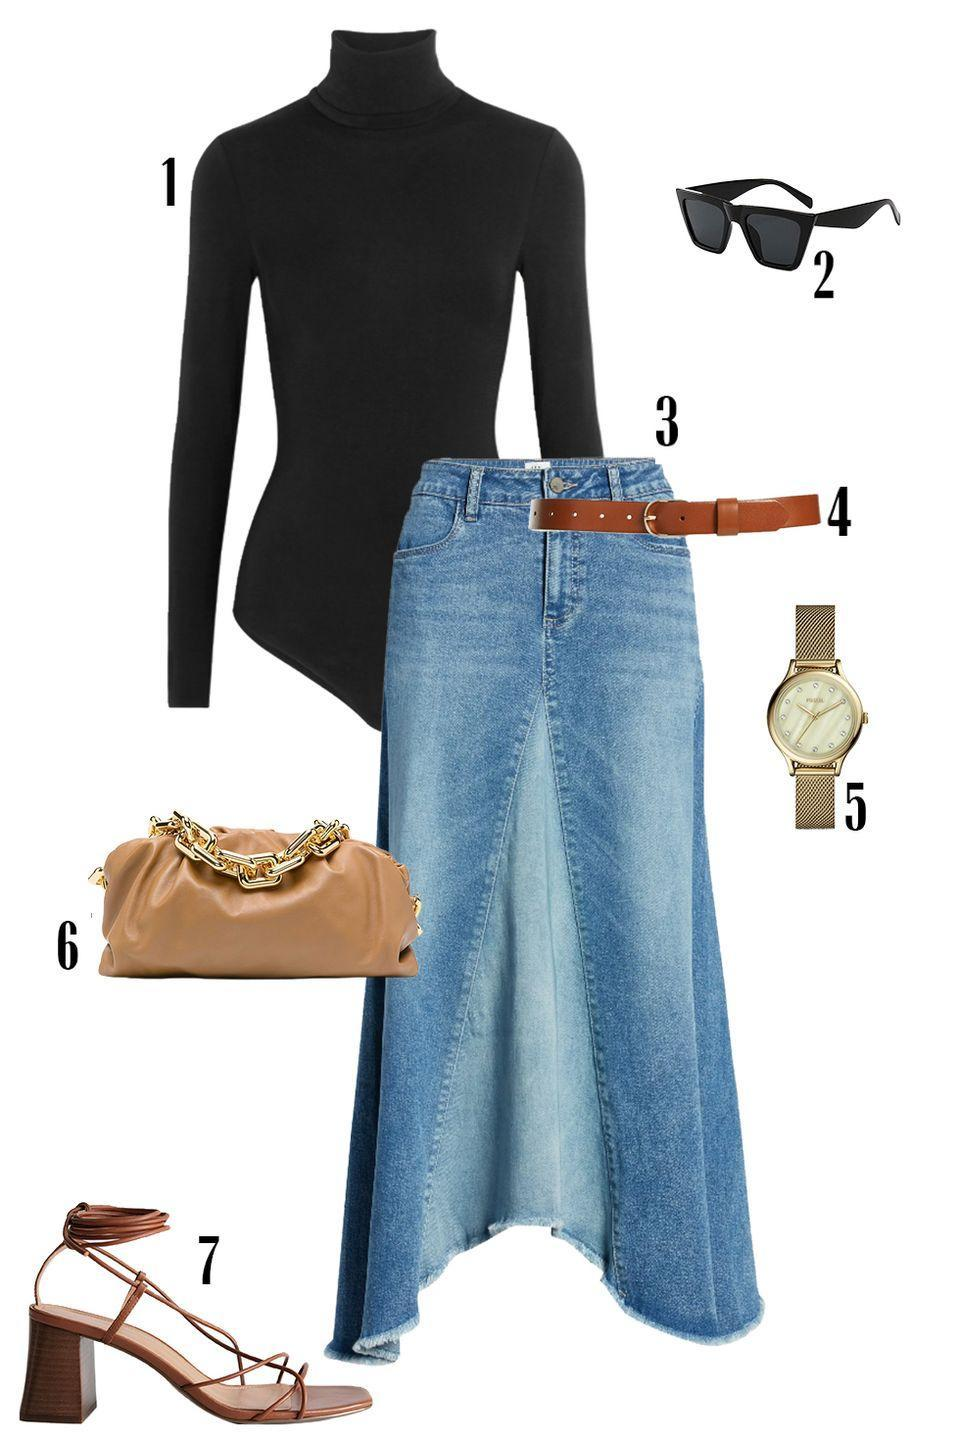 """<p>Swap your everyday denim for a denim skirt. This midi denim skirt gives your look a distinct '70s feel. Keep it relevant and fresh with the accessories and sport strappy sandals, an <em>it</em> bag, and your favorite sunnies for a modern feel. </p><p>Shop the pieces:<em> <em><a href=""""https://www.net-a-porter.com/en-us/shop/product/wolford/colorado-thong-bodysuit/618045"""" rel=""""nofollow noopener"""" target=""""_blank"""" data-ylk=""""slk:Wolford Colorado Bodysuit"""" class=""""link rapid-noclick-resp"""">Wolford Colorado Bodysuit</a></em><em>,</em> $250; </em><em><a href=""""https://www.amazon.com/dp/B07Q9Z15LM/ref=redir_mobile_desktop"""" rel=""""nofollow noopener"""" target=""""_blank"""" data-ylk=""""slk:Retro Sunglasses"""" class=""""link rapid-noclick-resp"""">Retro Sunglasses</a></em><em>,</em> $12; <em><a href=""""https://www.nordstrom.com/s/wash-lab-pieced-denim-midi-skirt/5392340"""" rel=""""nofollow noopener"""" target=""""_blank"""" data-ylk=""""slk:Wash Lab Denim Skirt"""" class=""""link rapid-noclick-resp"""">Wash Lab Denim Skirt</a></em>, $128; <em><a href=""""https://www.nordstrom.com/s/halogen-tailored-trouser-leather-belt-regular-plus-size/3481648?origin=category-personalizedsort&breadcrumb=Home/Women/Accessories/Belts&fashioncolor=Brown&color=cognac"""" rel=""""nofollow noopener"""" target=""""_blank"""" data-ylk=""""slk:Halogen Leather Belt"""" class=""""link rapid-noclick-resp"""">Halogen Leather Belt</a></em>, $39; <em><a href=""""https://www.fossil.com/en-us/products/laney-three-hand-gold-tone-stainless-steel-watch/BQ3391.html"""" rel=""""nofollow noopener"""" target=""""_blank"""" data-ylk=""""slk:Fossil Watch"""" class=""""link rapid-noclick-resp"""">Fossil Watch</a></em>, $56; <em><a href=""""https://www.farfetch.com/shopping/women/bottega-veneta-the-chain-pouch-shoulder-bag-item-16109156.aspx"""" rel=""""nofollow noopener"""" target=""""_blank"""" data-ylk=""""slk:Bottega Veneta Pouch Bag"""" class=""""link rapid-noclick-resp"""">Bottega Veneta Pouch Bag</a></em>, $3,690, <em><a href=""""https://www.stories.com/en_usd/shoes/heeled-sandals/product.leather-strappy-lace-up-heeled-sandals-orange.0731706003.html"""" re"""